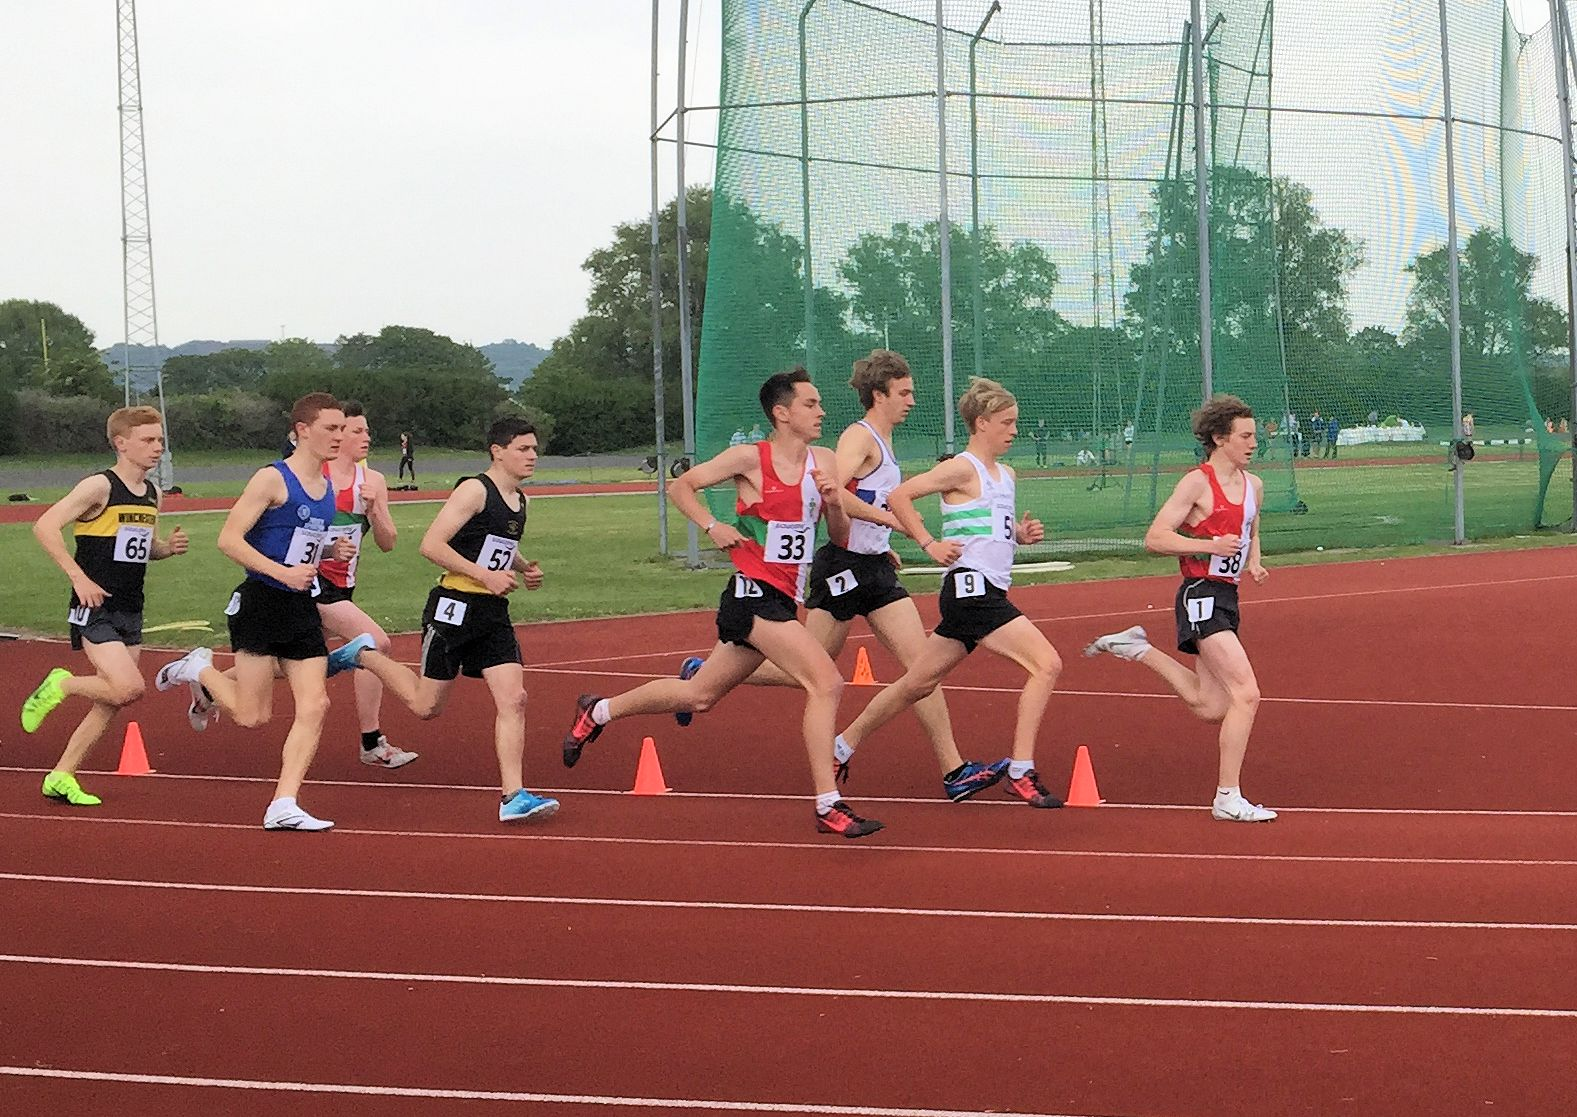 Robbie Leading the Pack in the 3000m